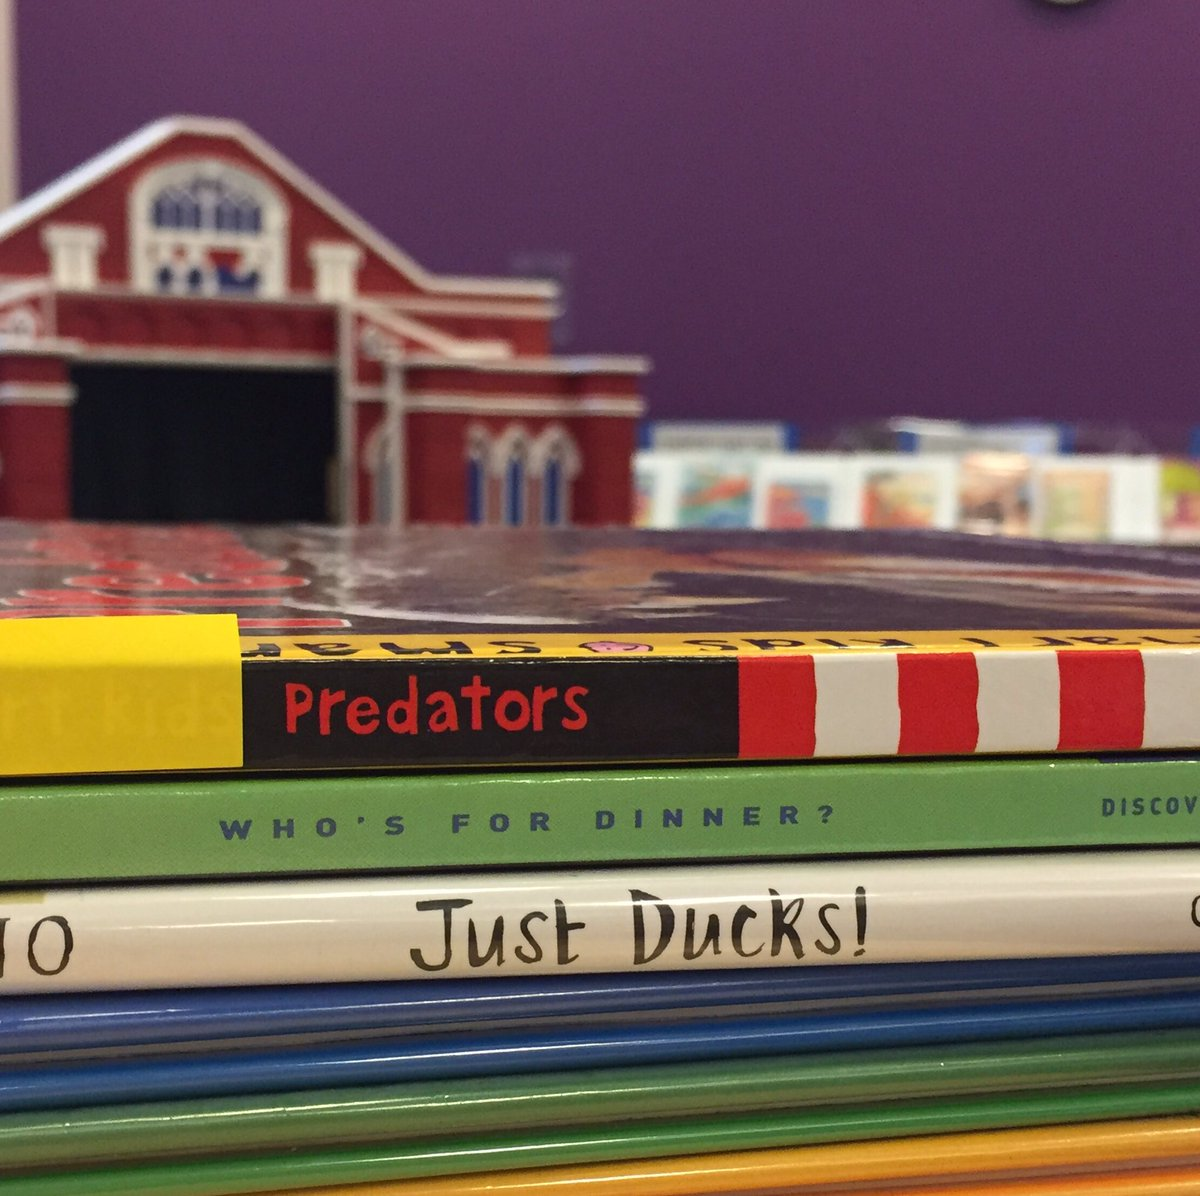 Shelving books & getting excited for @PredsNHL matchup with @AnaheimDucks tonight! #NHLPLAYOFFS #GoPreds #smashville https://t.co/TruvIPIlIV